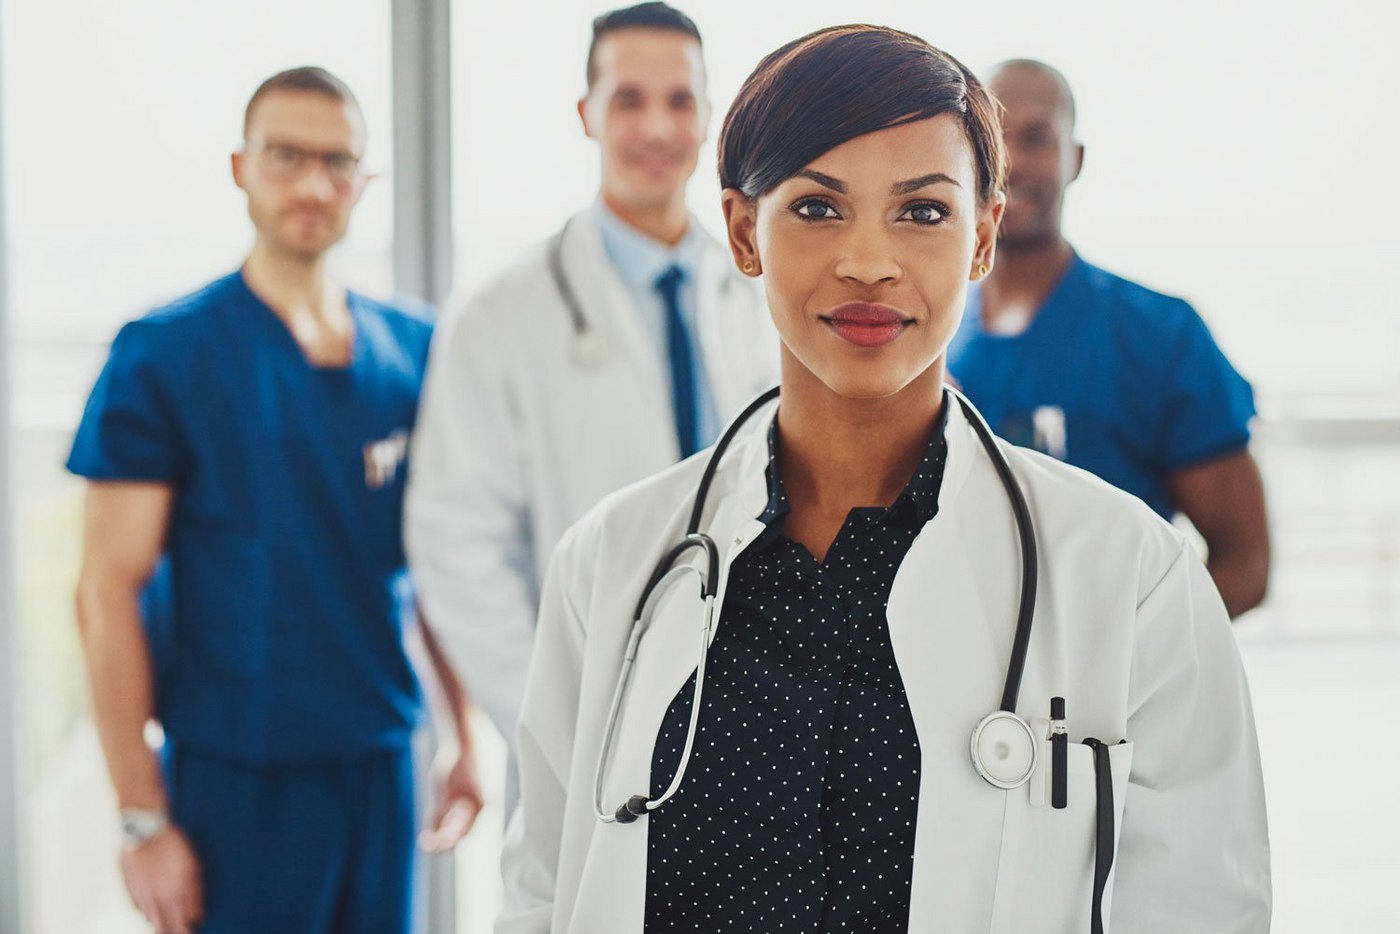 Survey: 50% of Physicians Haven't Heard of MACRA